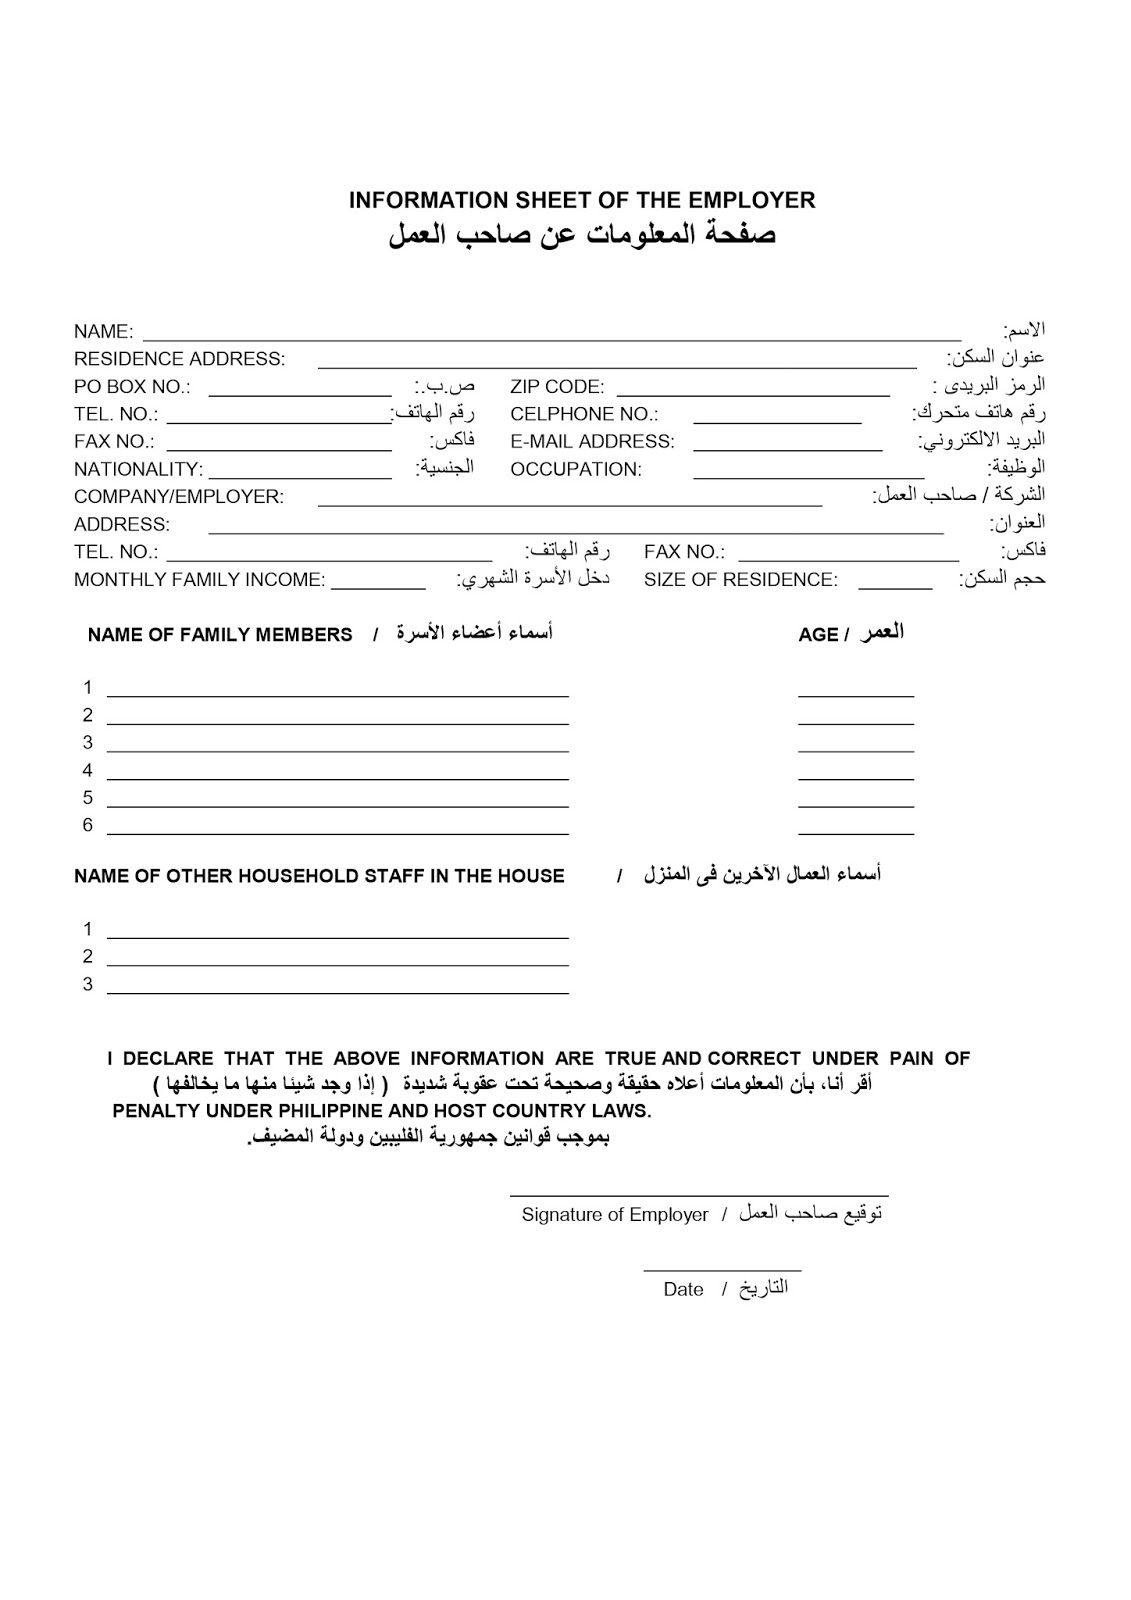 Guide to oec overseas employment certificate from polo dubai empoyer information sheet for a household worker yelopaper Images